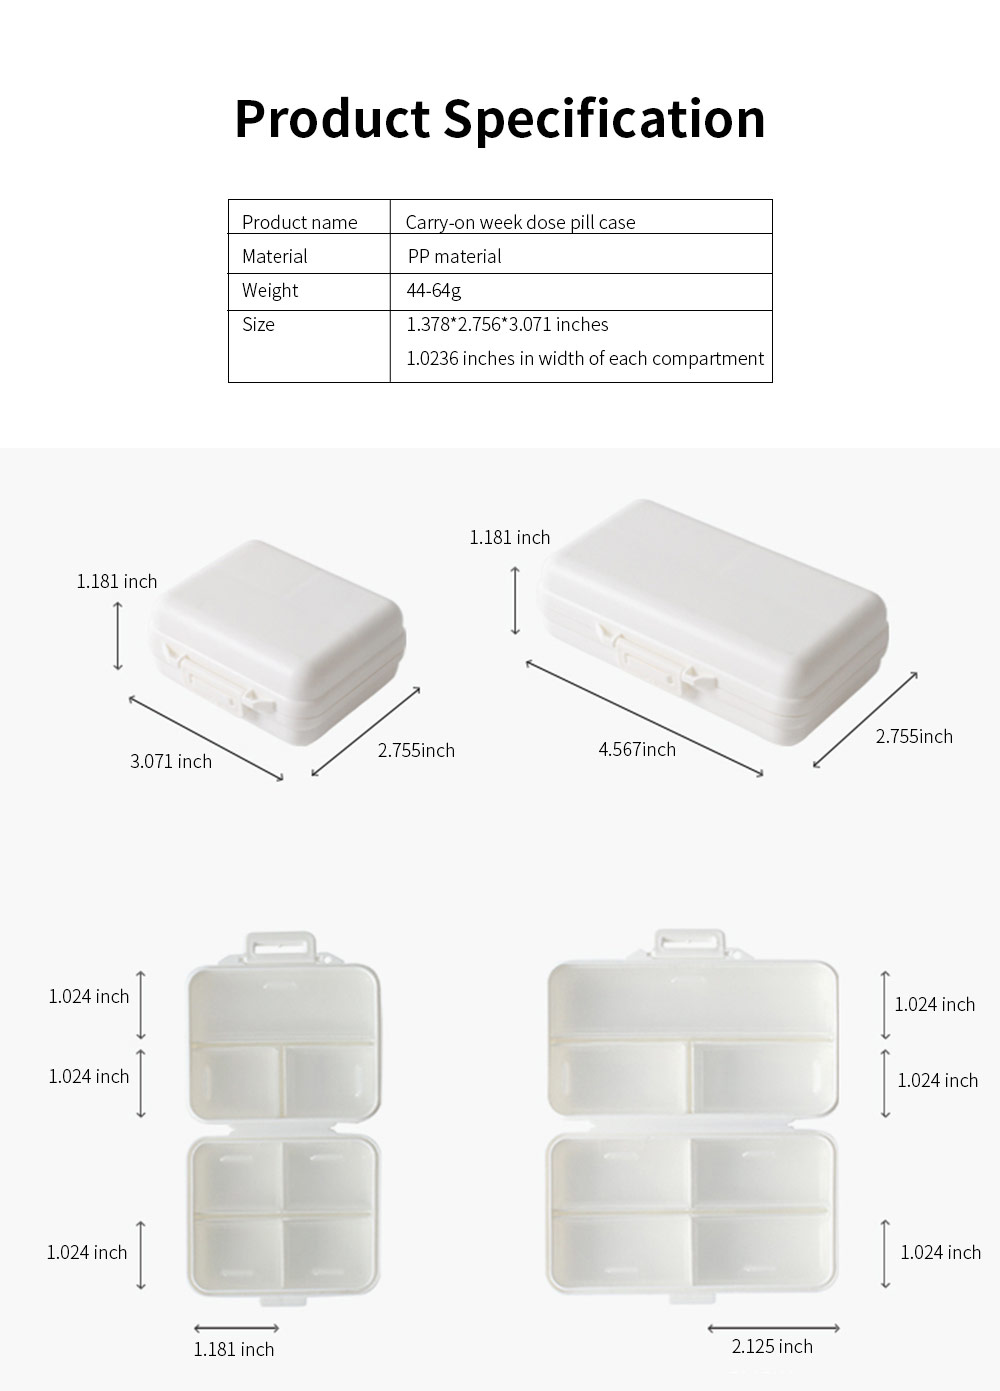 Mini-sized Medicine Container for Outdoor Travelling, Concise Potable White Little Carry-on Pill Case One Week Dose Dispenser 6